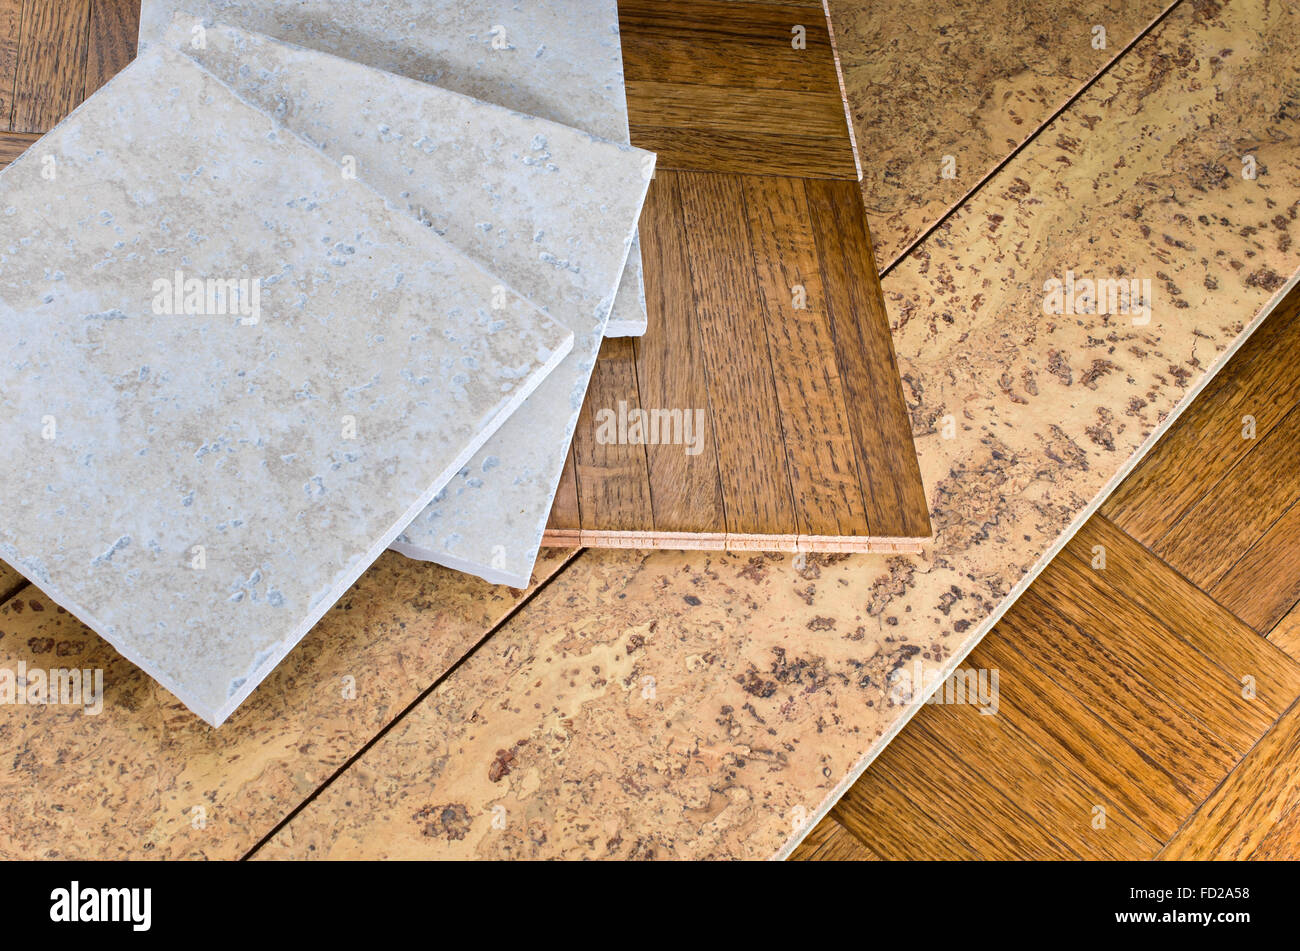 Ceramic tile flooring samples Glazed Ceramic Tile Cork And Parquet Wooden Flooring Samples For Home Interior Remodel Chappelleclub Ceramic Tile Cork And Parquet Wooden Flooring Samples For Home